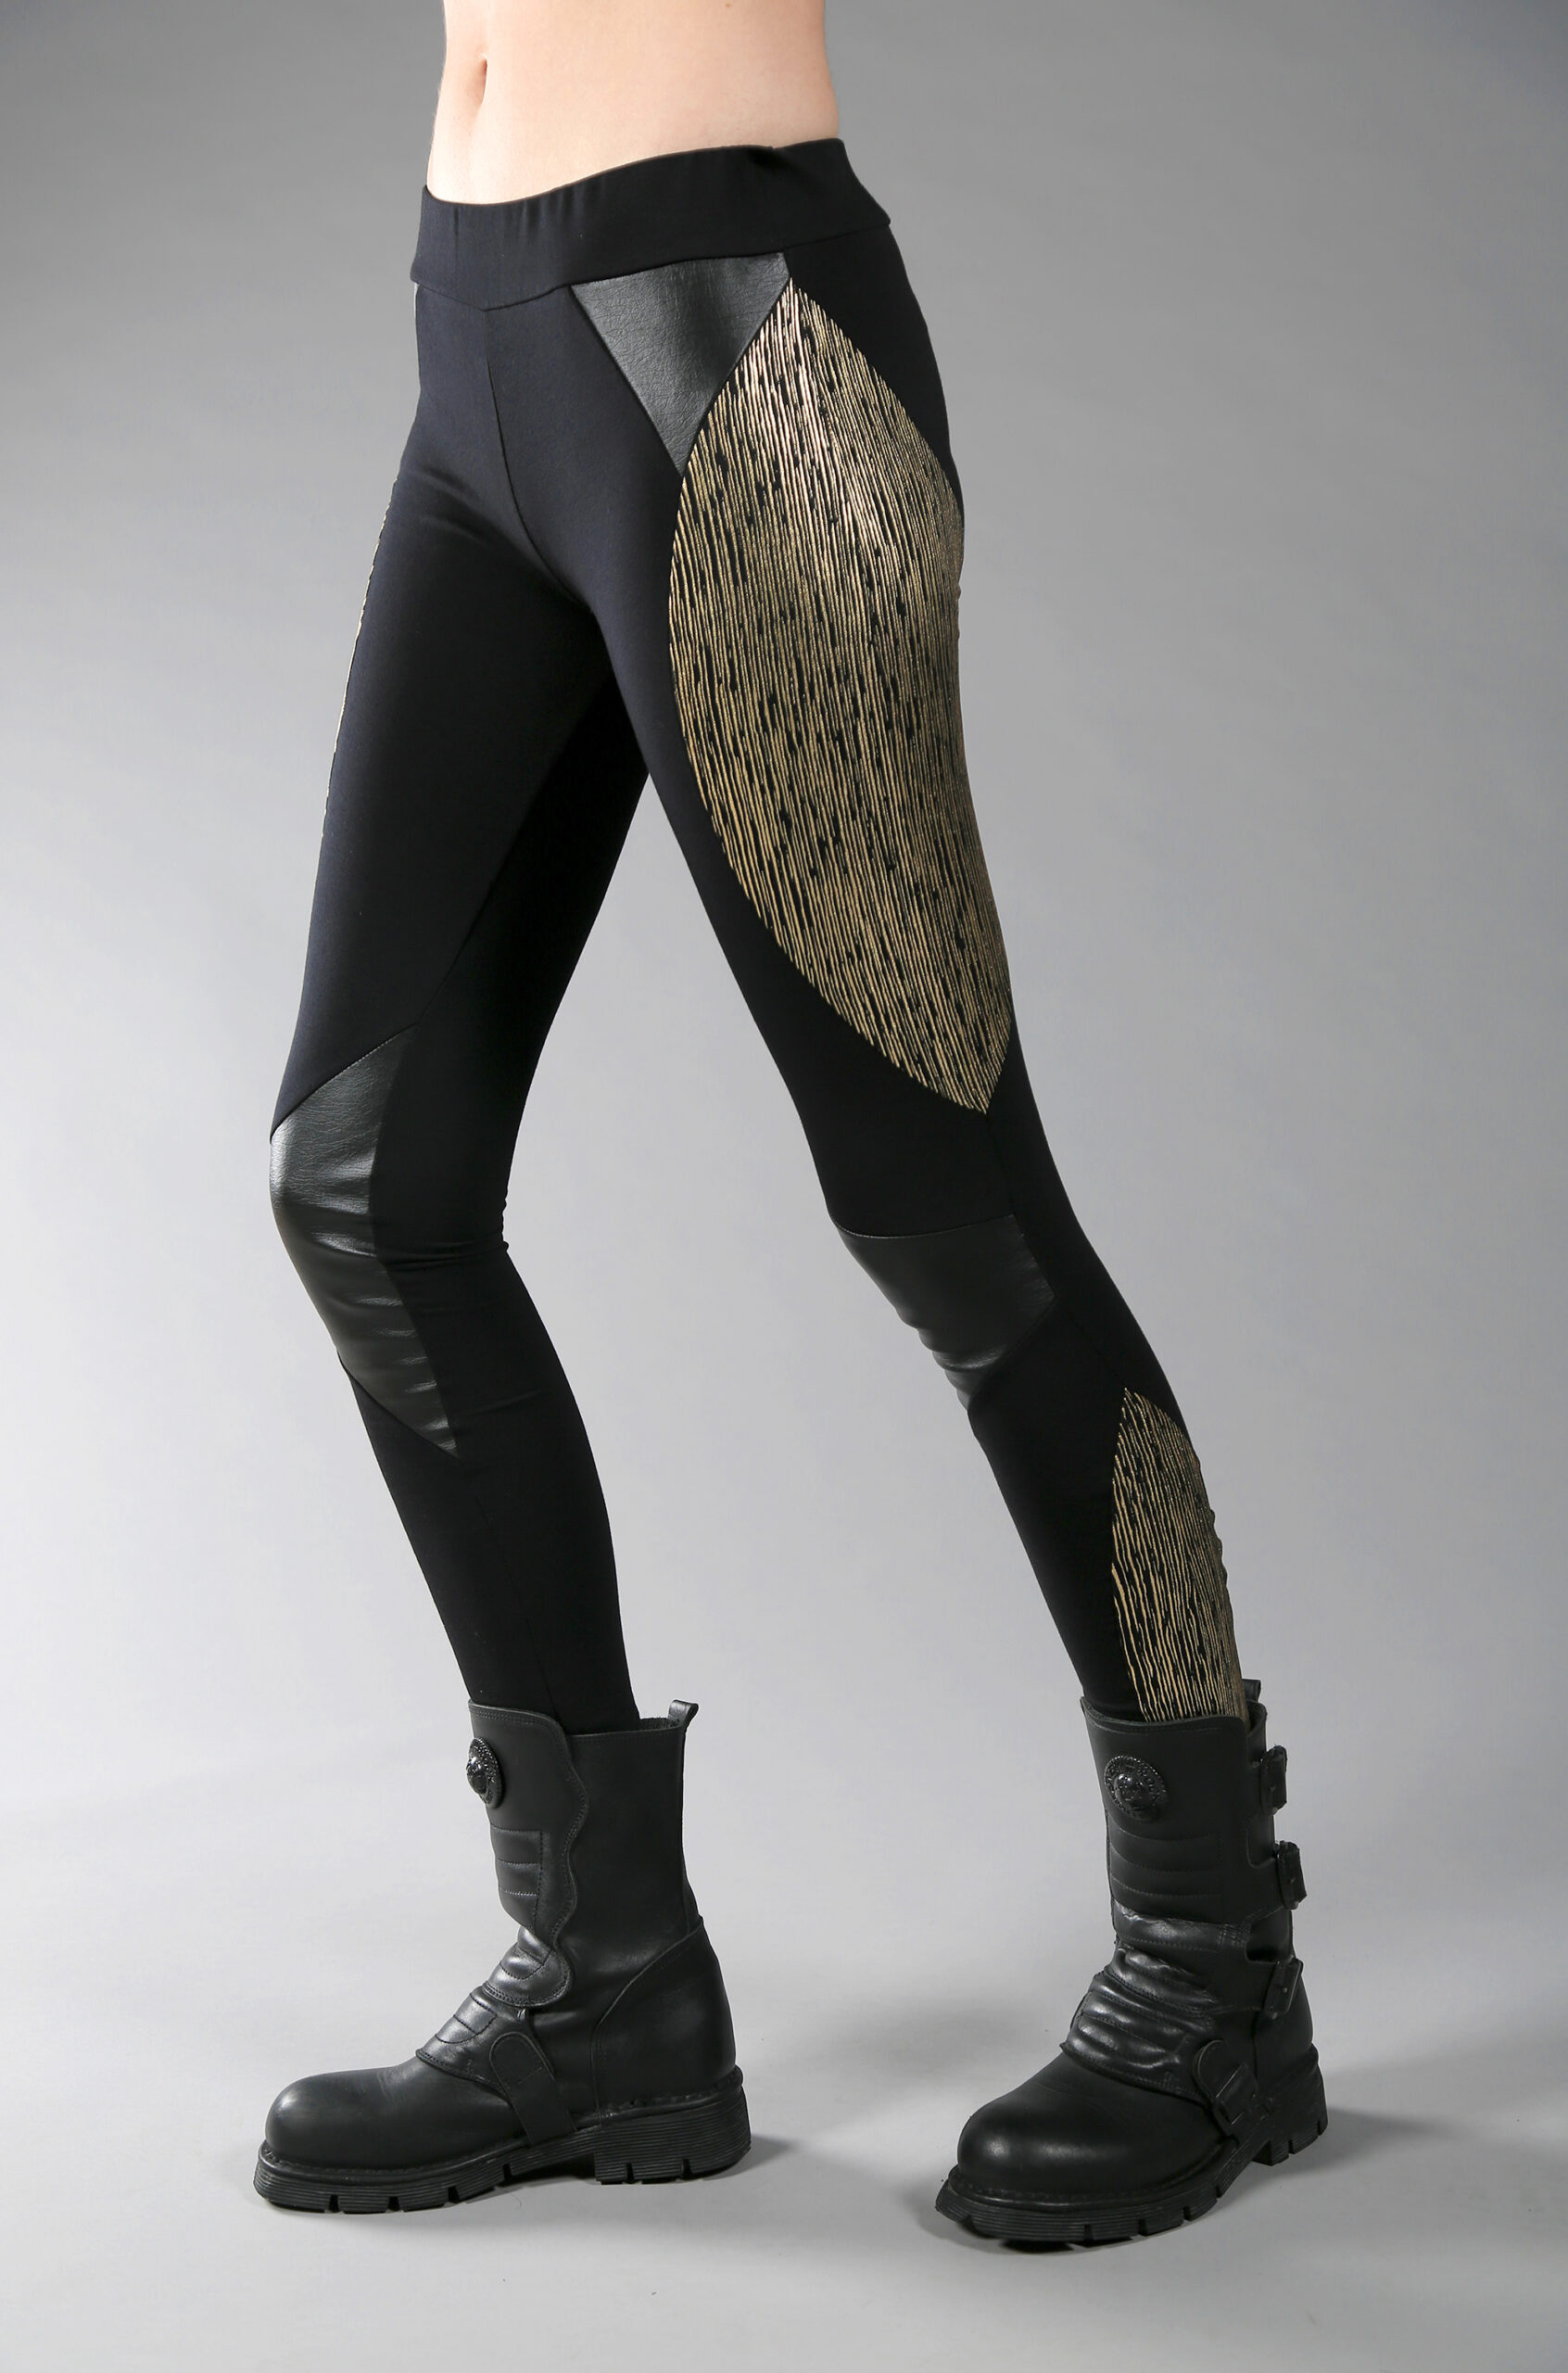 Cotton lycra leggings designed with fake leather and golden fabric. stretchable leggings comfortable for yoga